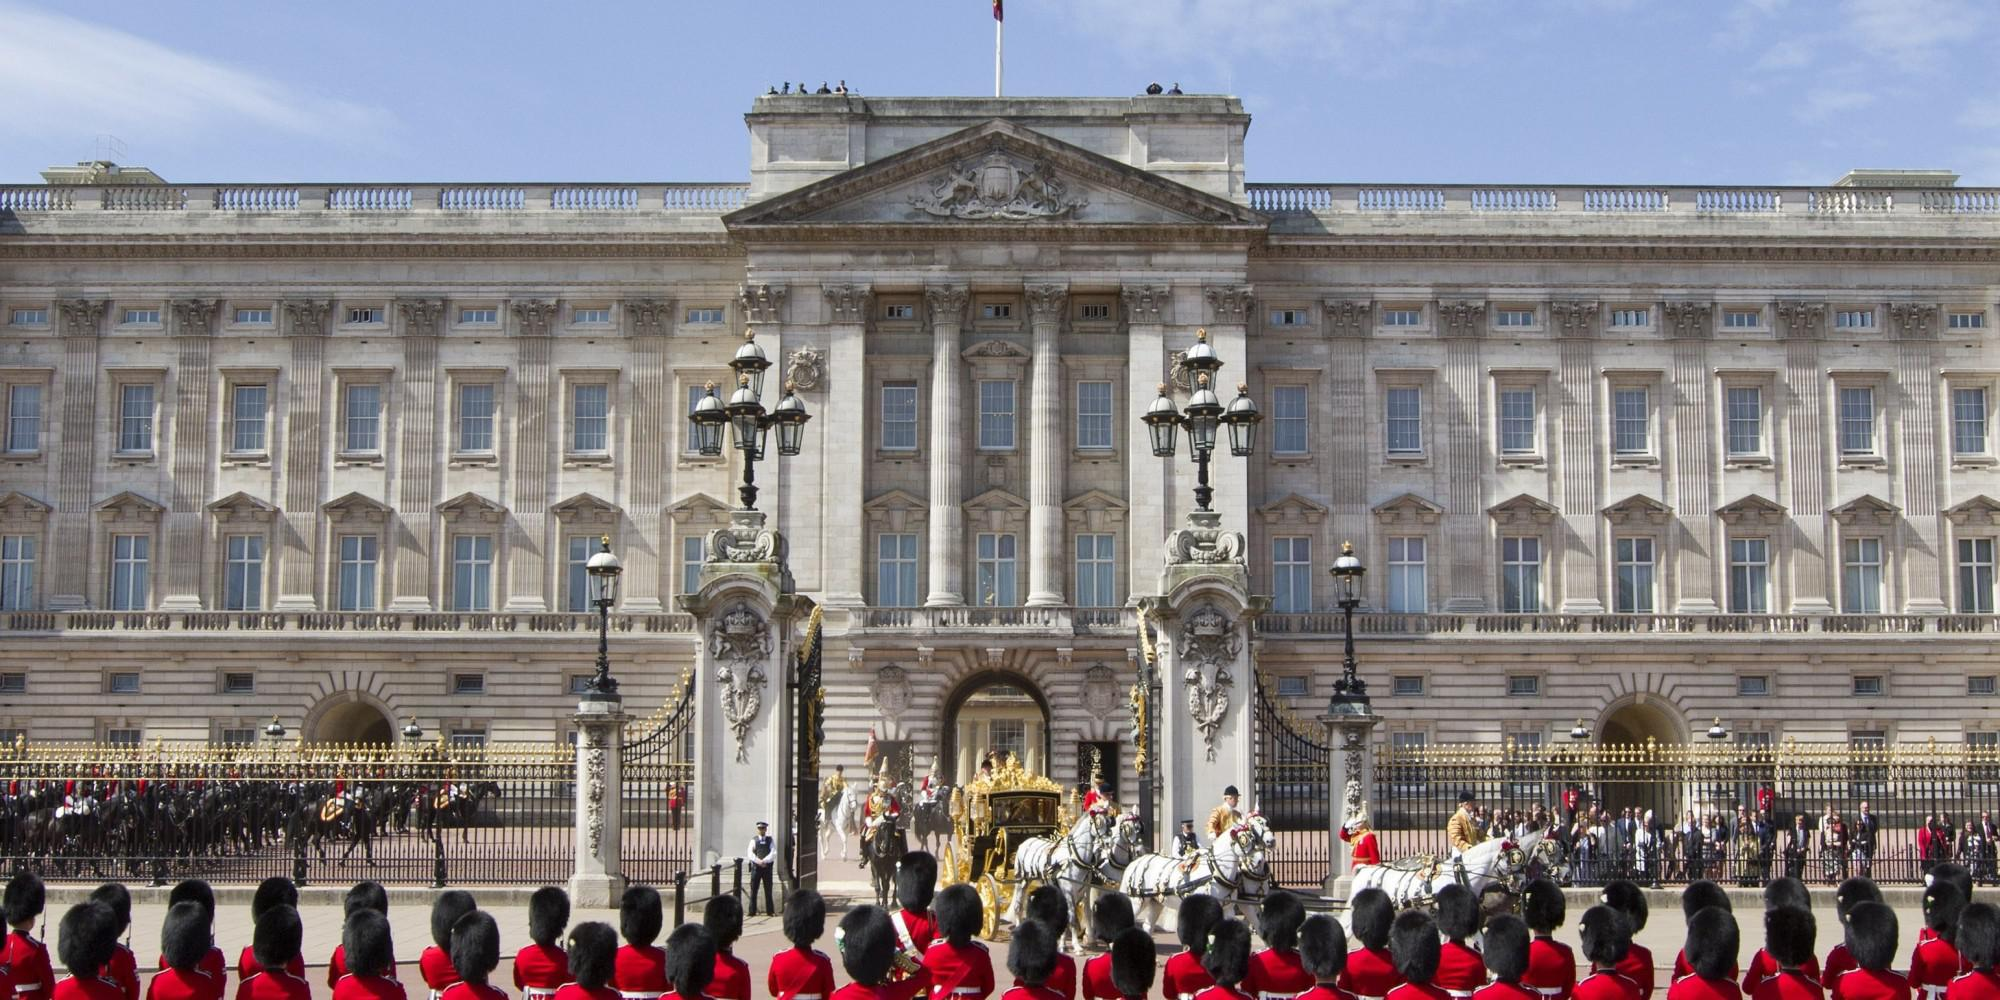 buckingham palace research papers Buckingham palace reservicing programme summary report page | 2 buckingham palace is one of the united kingdom's most prestigious buildings.